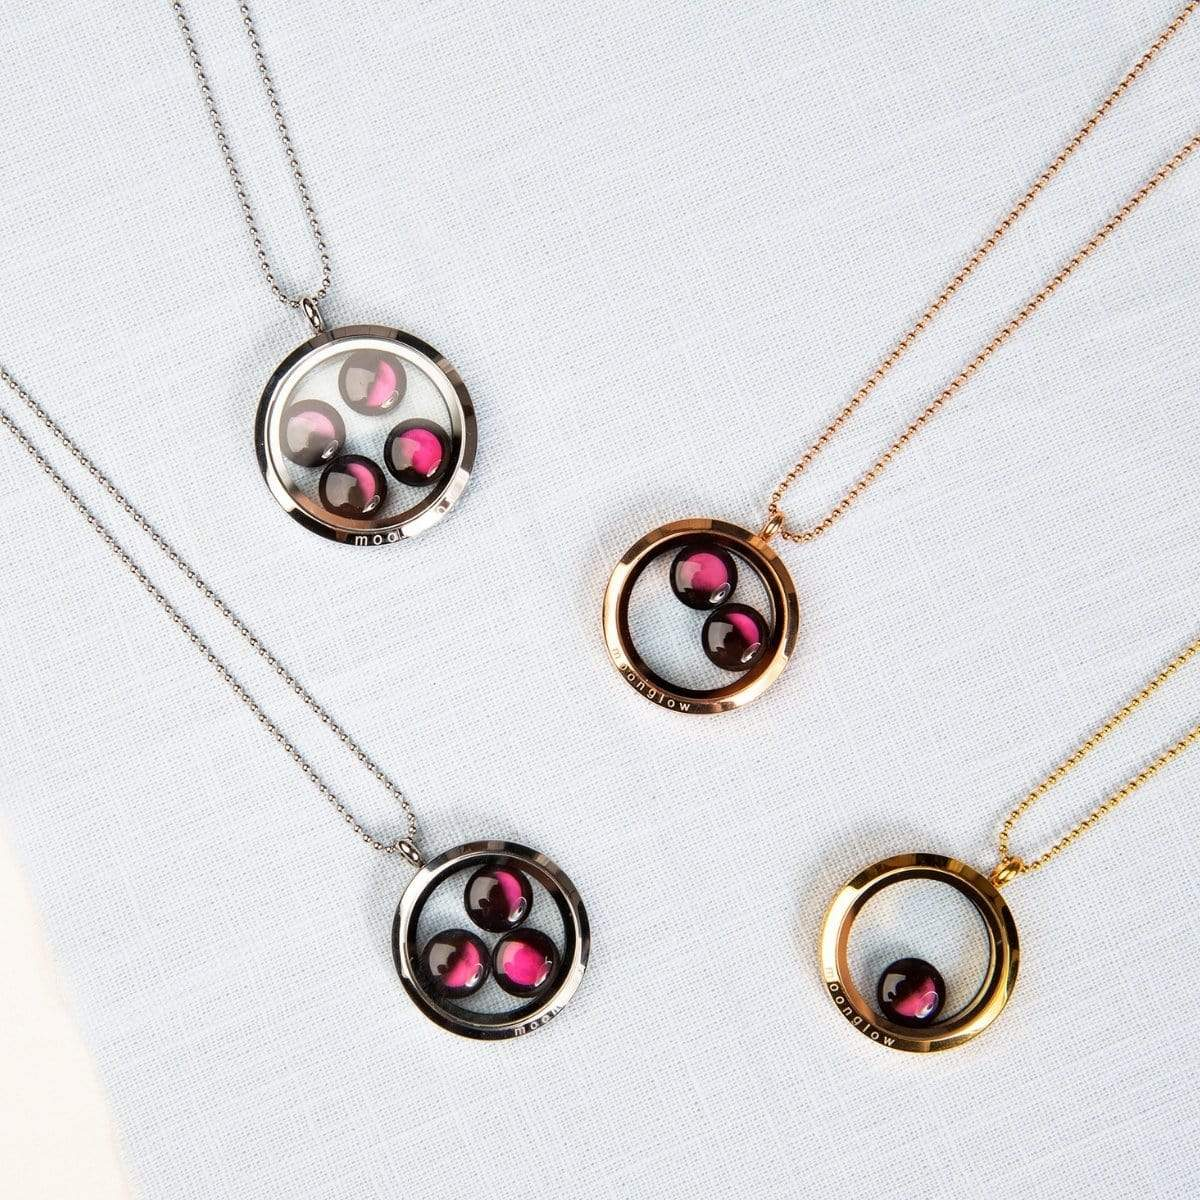 Pink Moon Lovers in the Locket Necklace